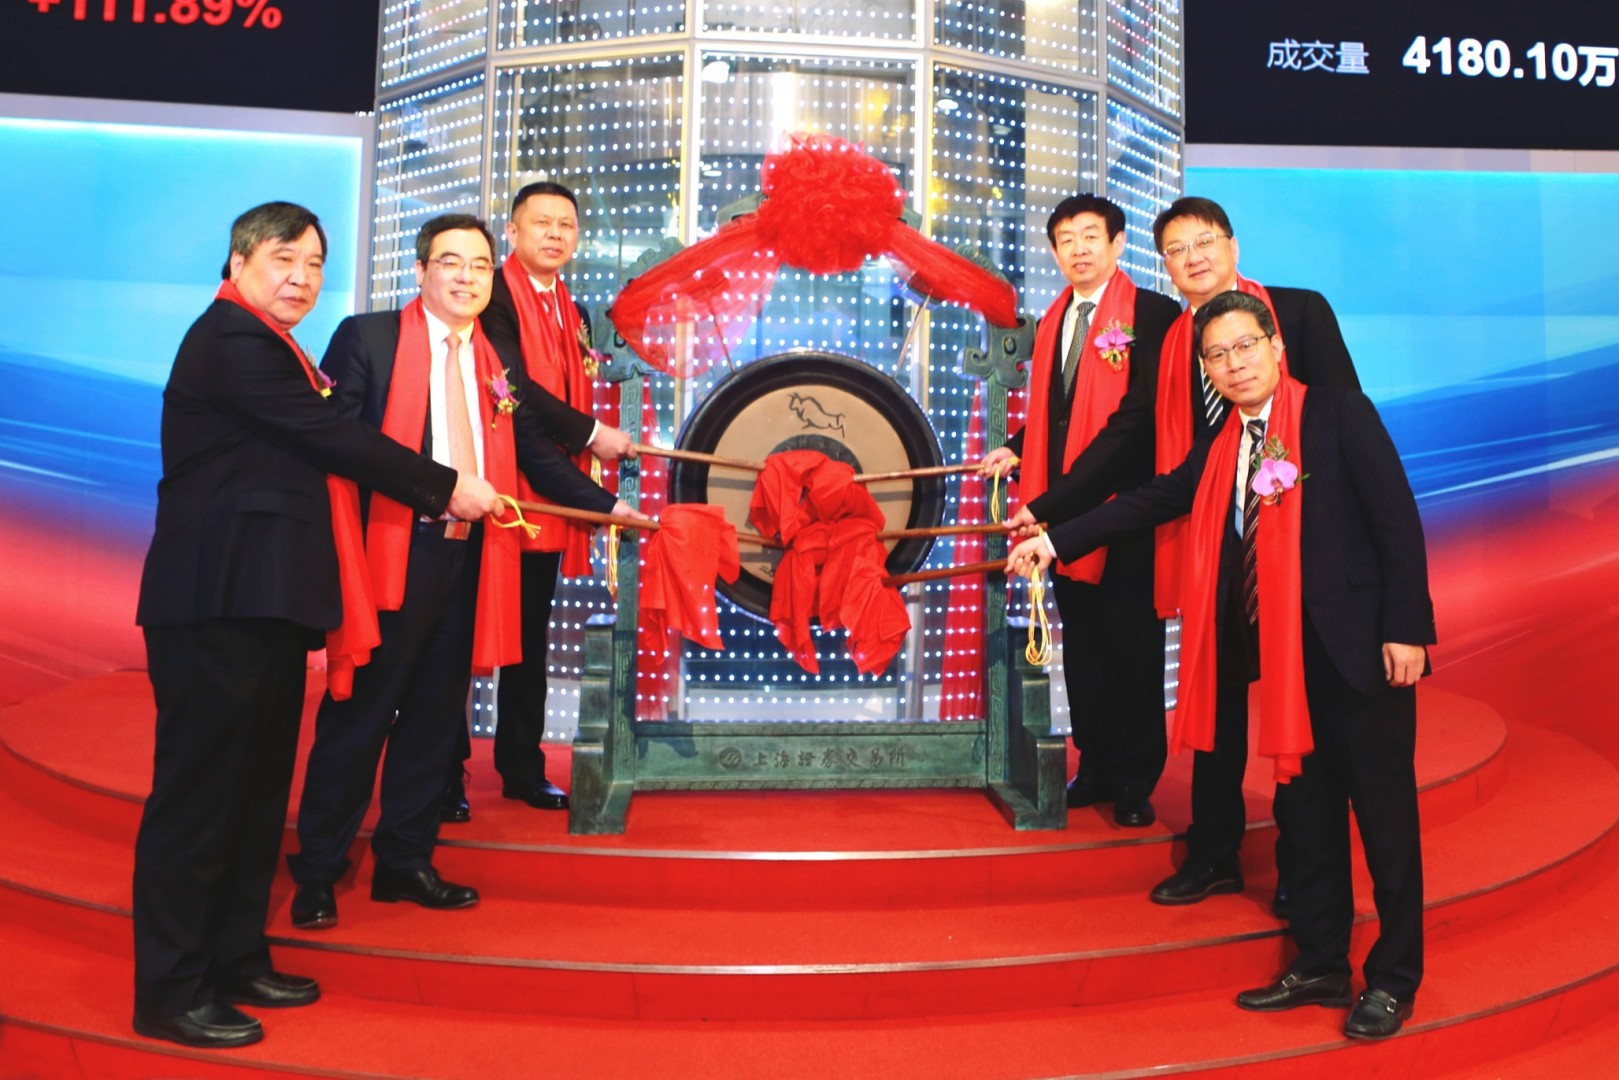 Trina Solar has returned to public status after re-floating on the Shanghai Stock Exchange Science and Technology Innovation Board, also known as the STAR Market. Image: Trina Solar